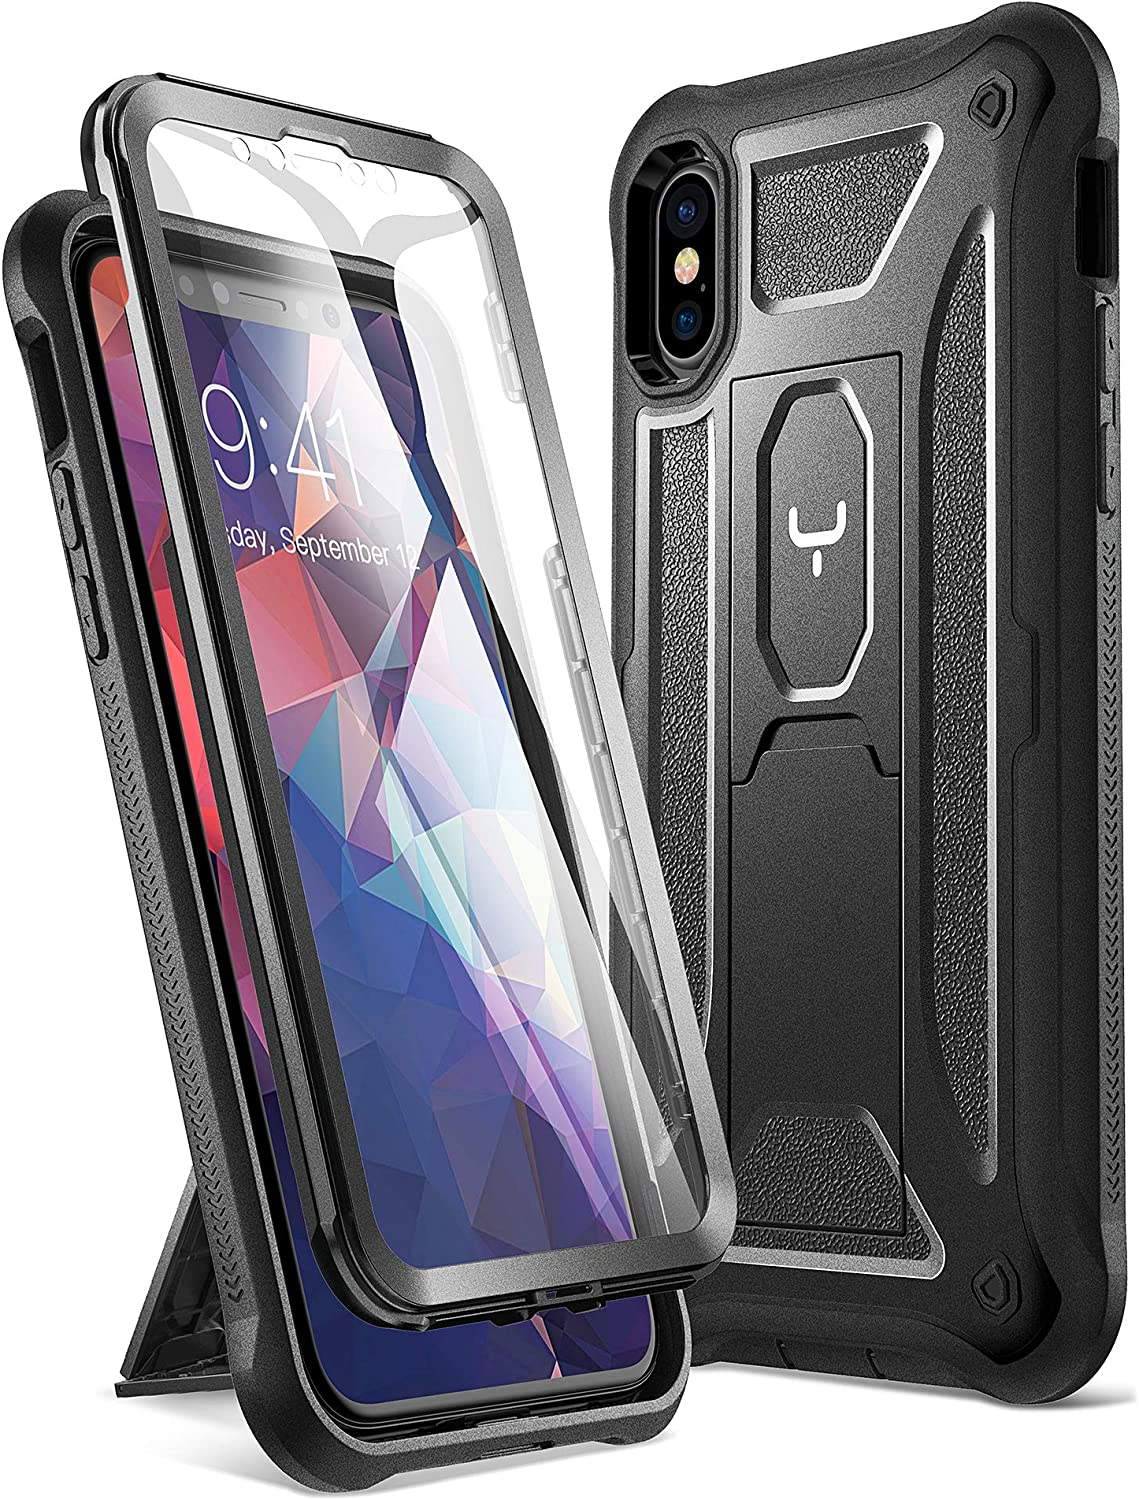 YOUMAKER  2020 Upgraded  iPhone Xs Case/iPhone X Case, Kickstand Case with Built-in Screen Protector for iPhone Xs/X 5.8 Inch - Black